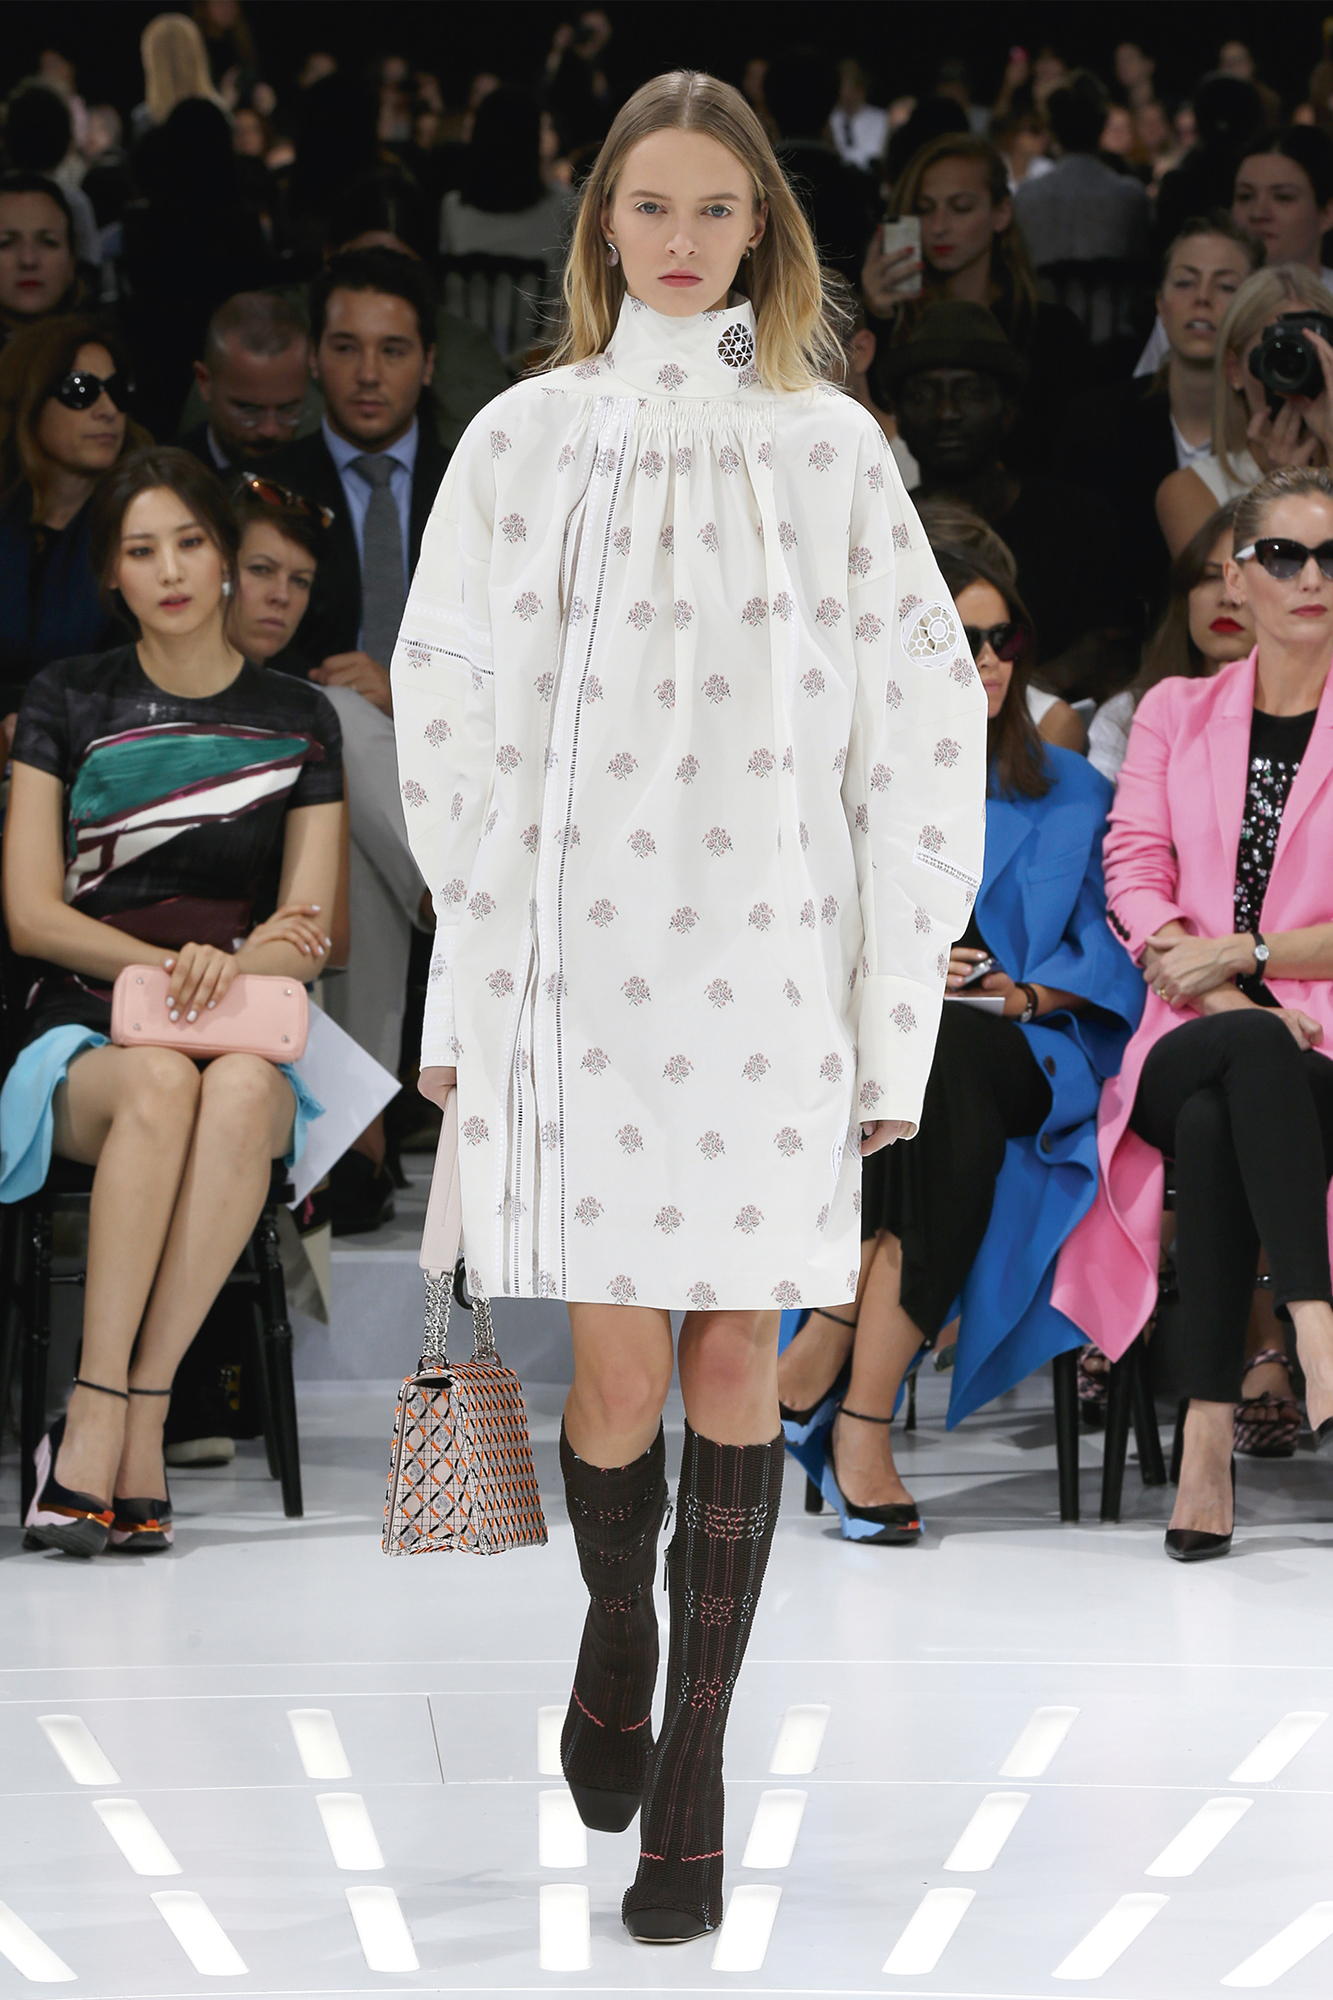 Christian Dior Haute Couture Spring-Summer Ready To Wear Dresses & Accessories Collection 2015-16 (20)